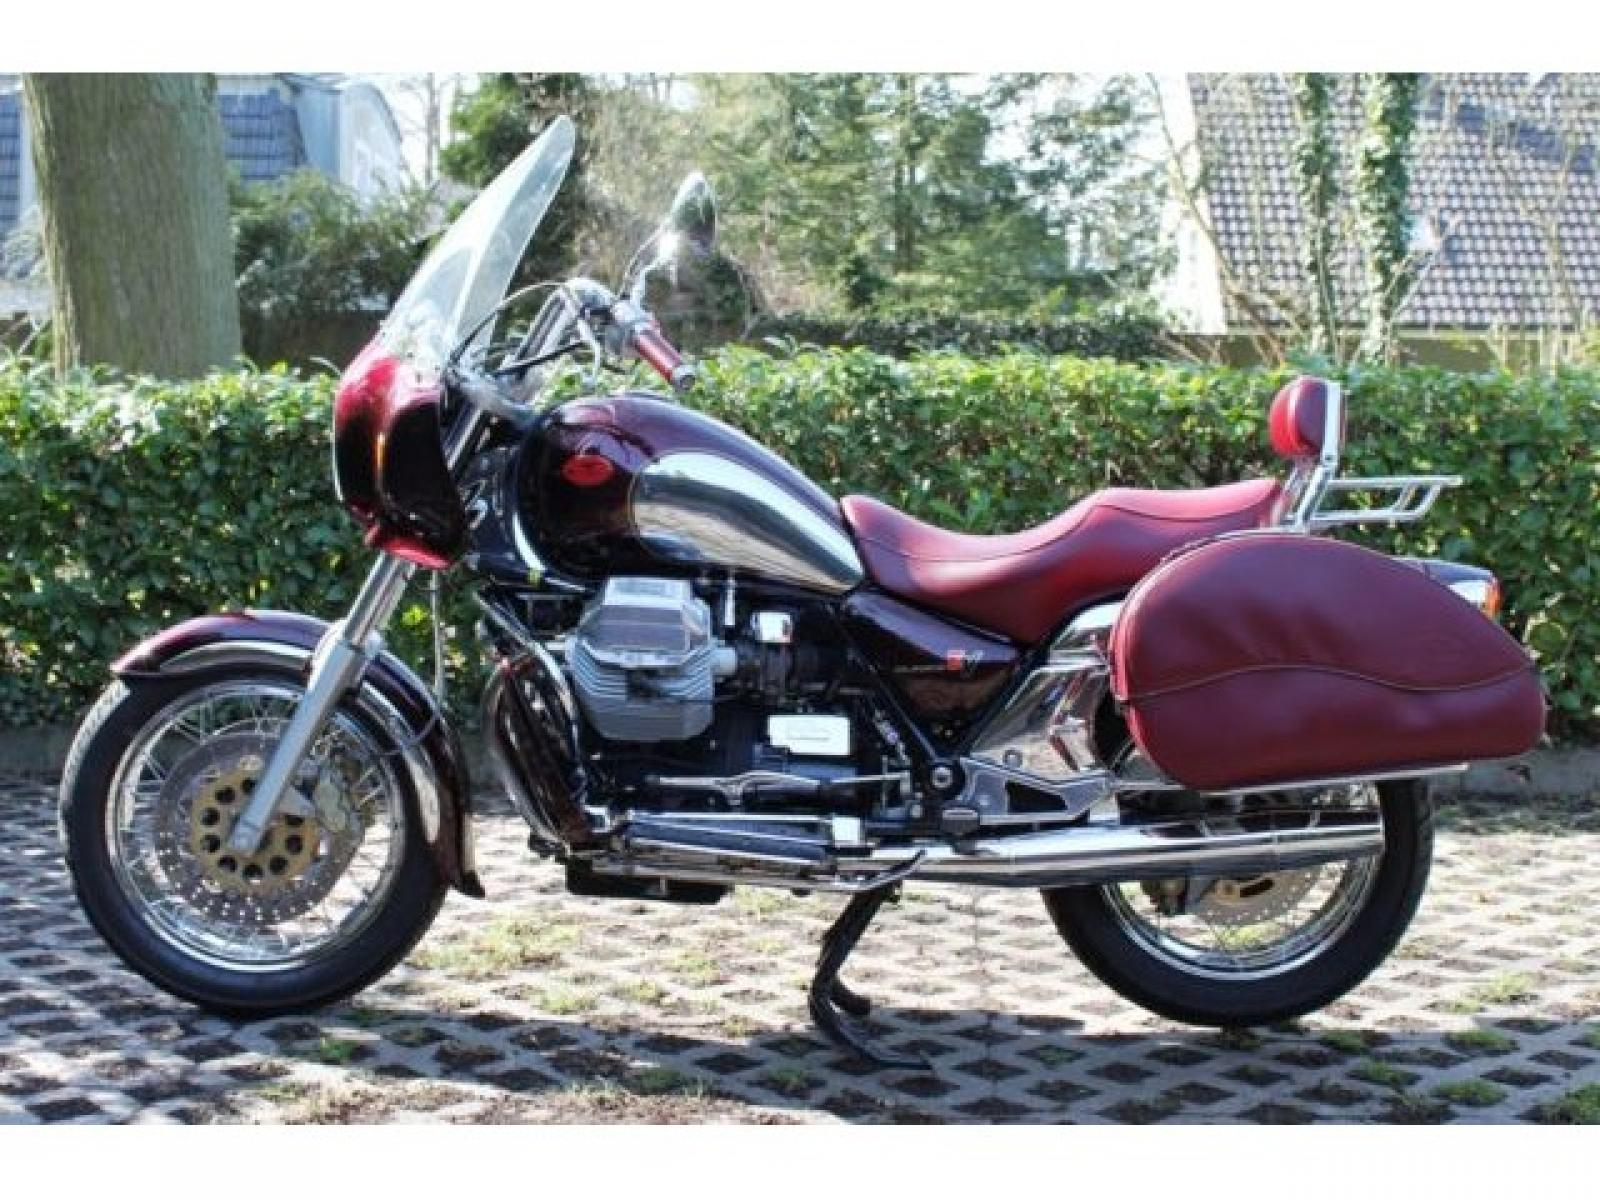 Moto Guzzi California EV 80 images #109402